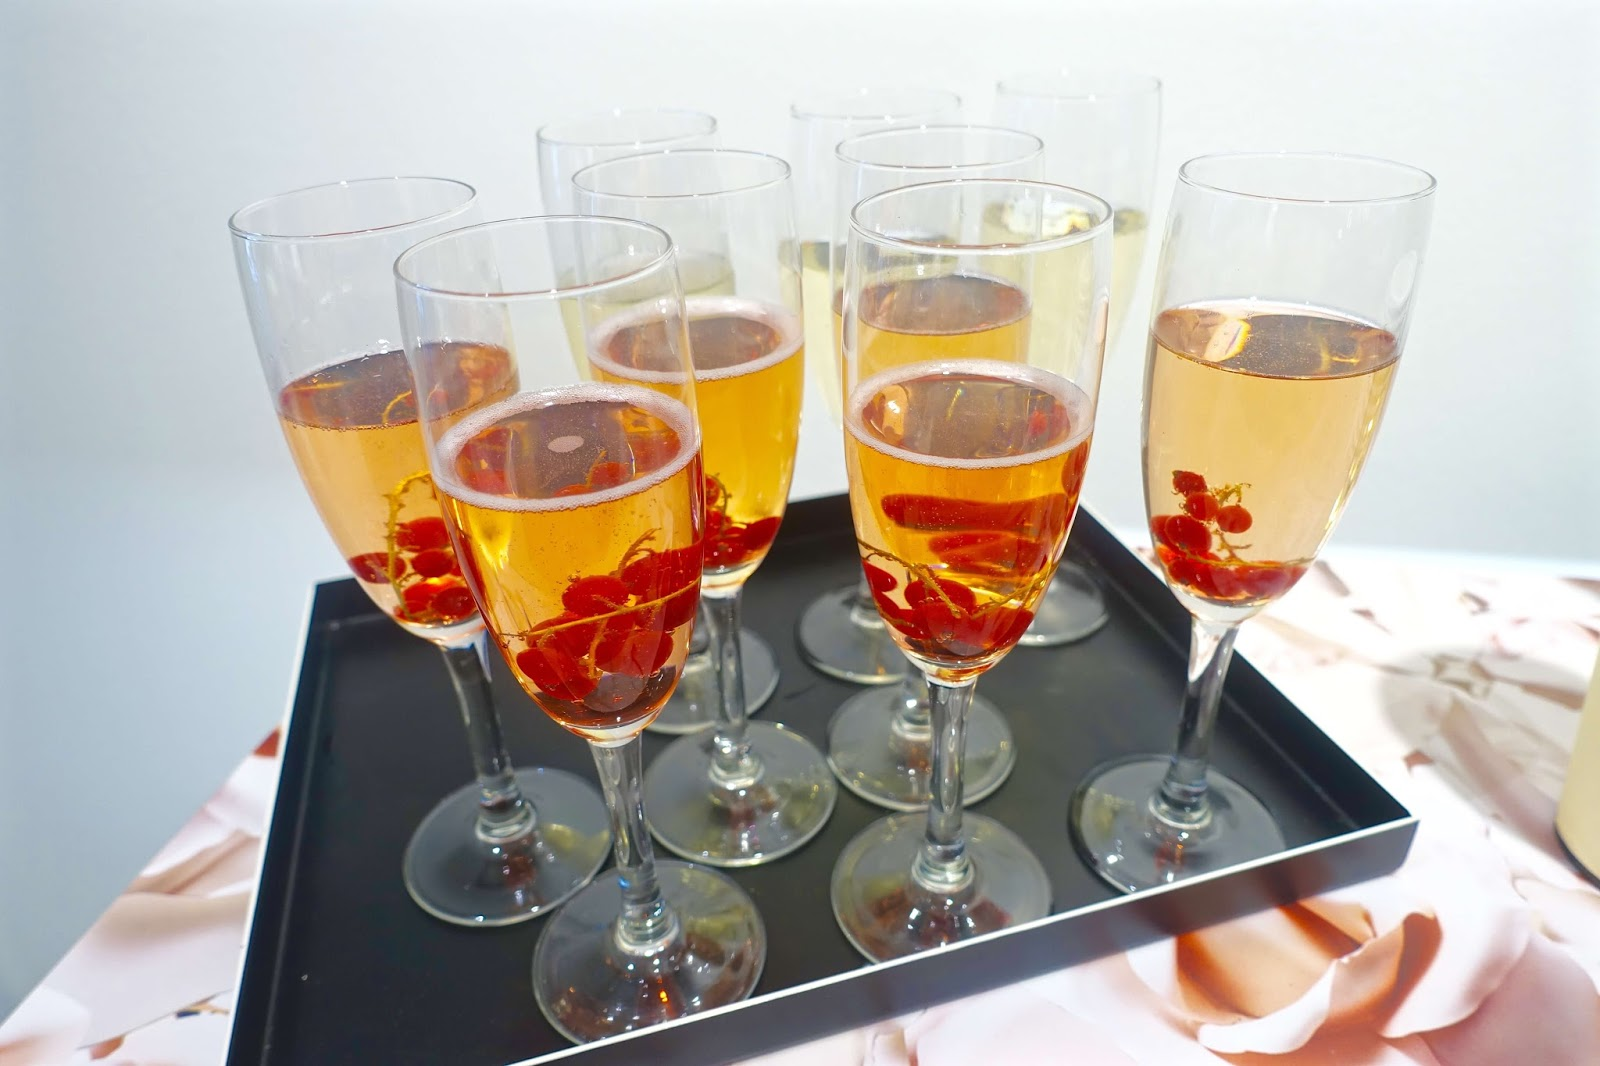 autumnal fizz and berries